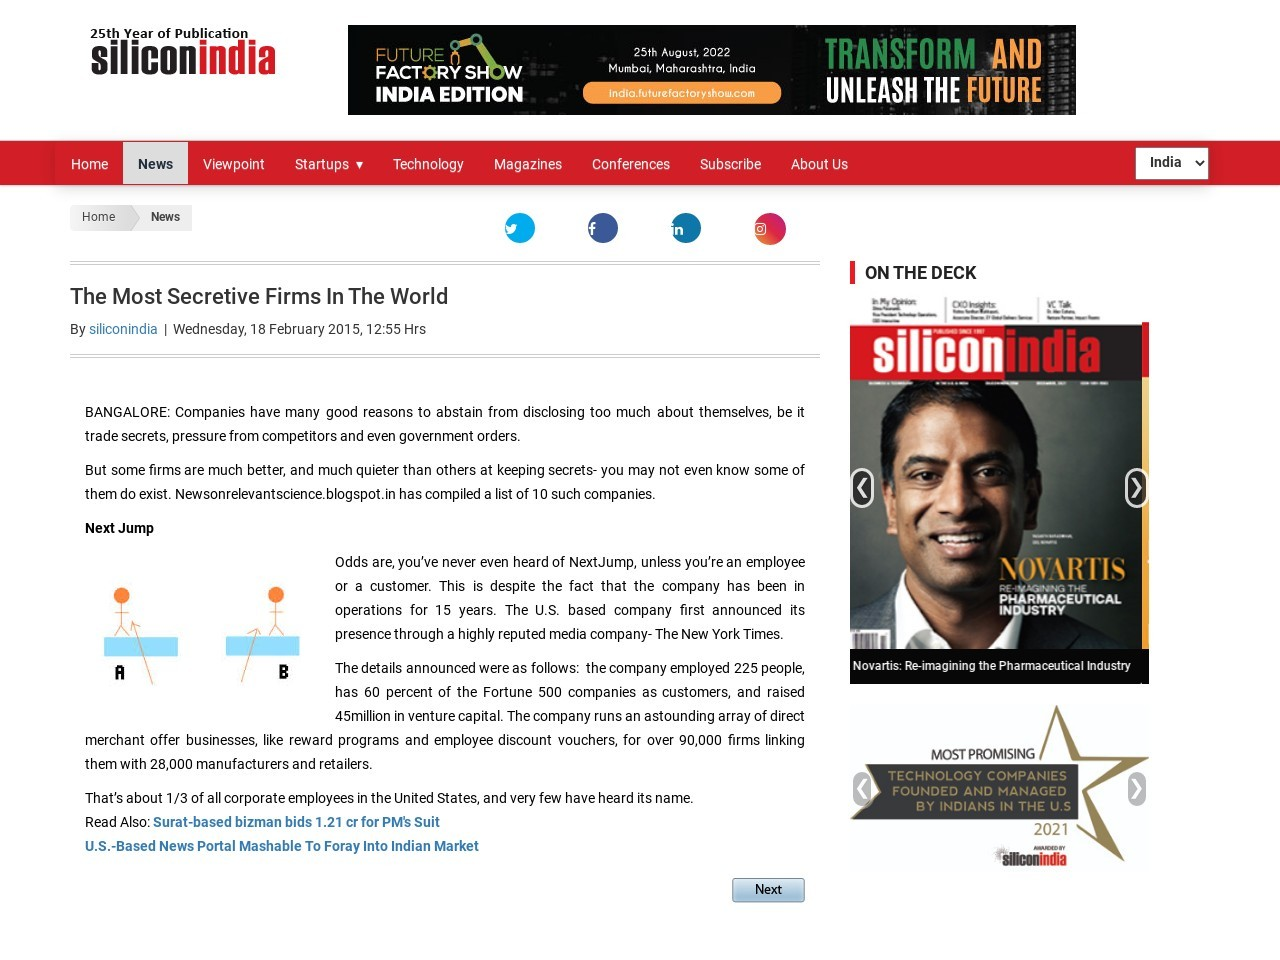 The Most Secretive Firms In The World